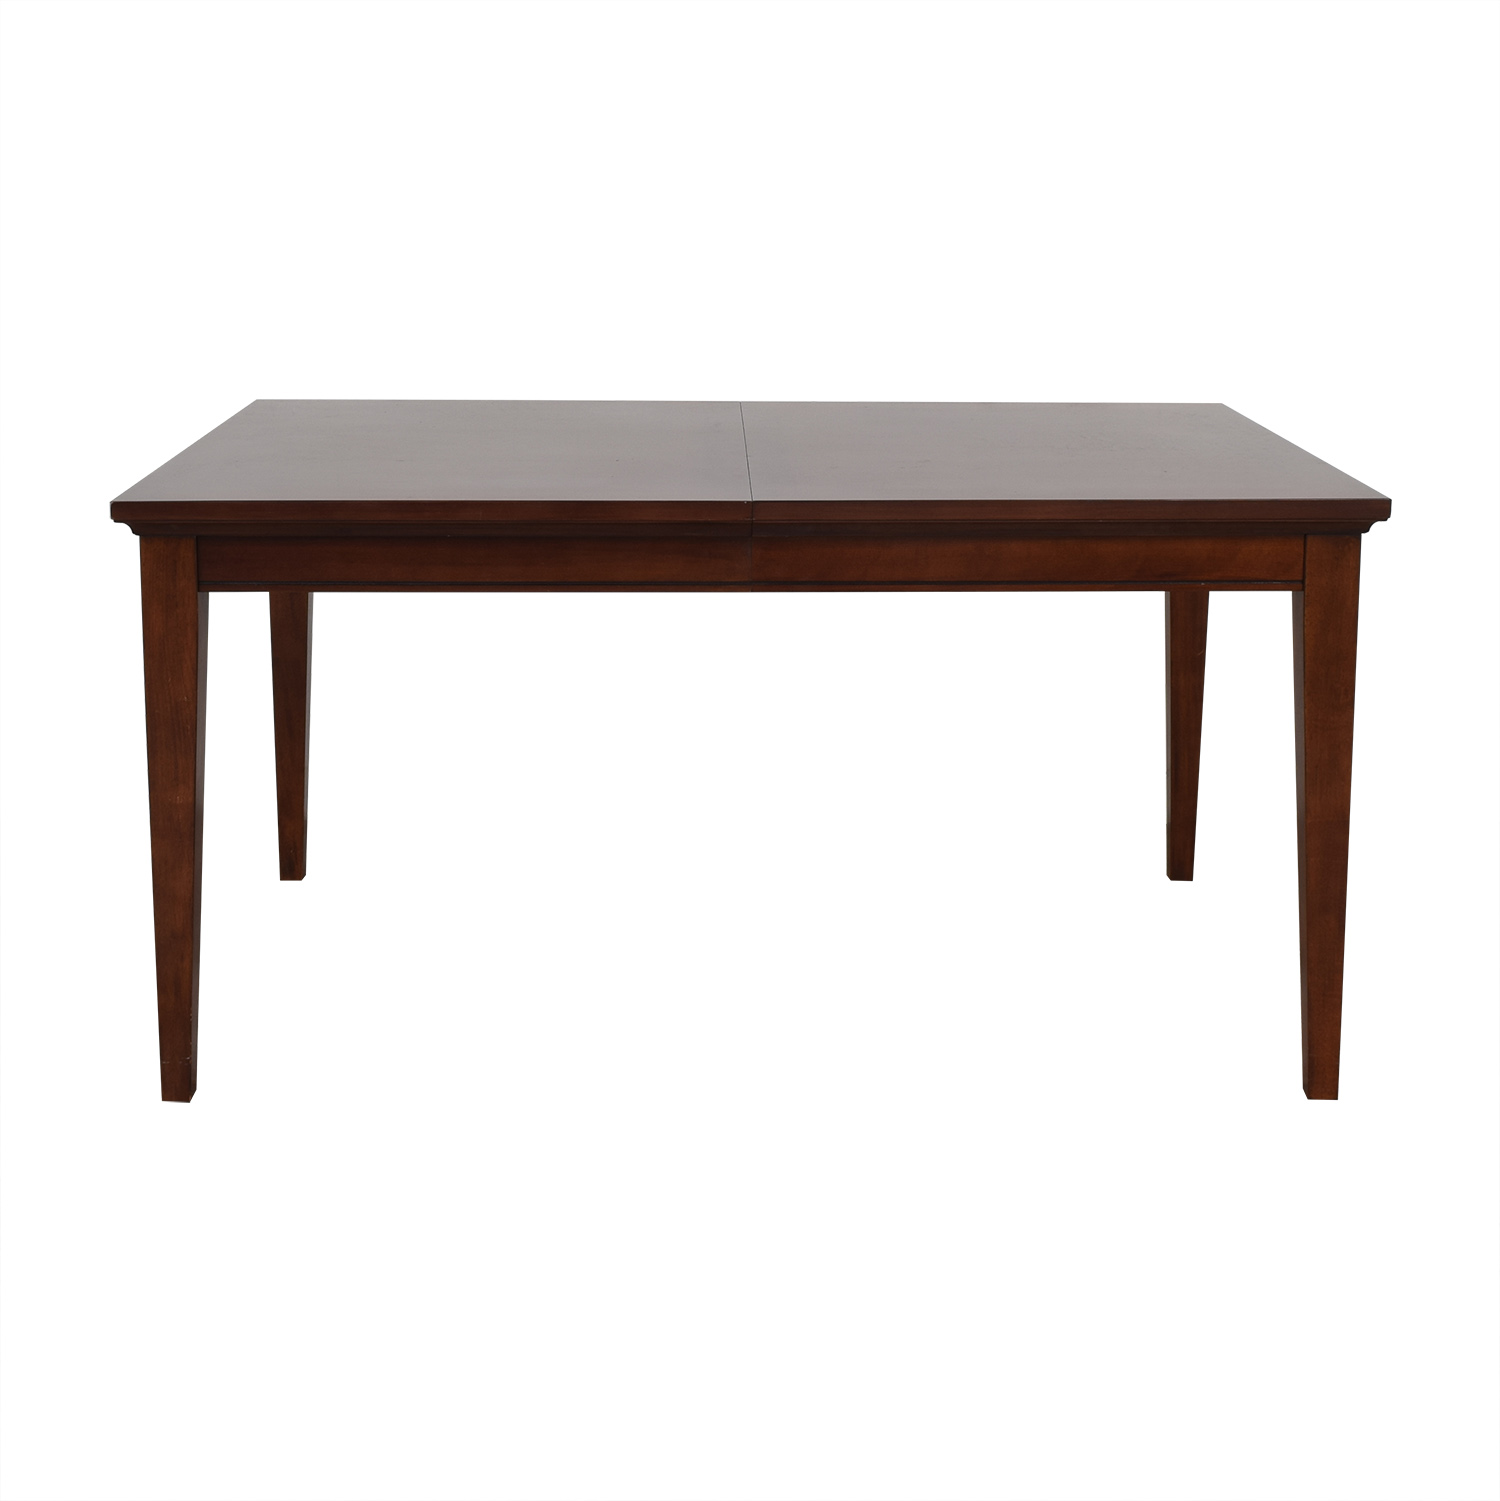 Legacy Classic Furniture Legacy Classic Funiture Dining Table Tables